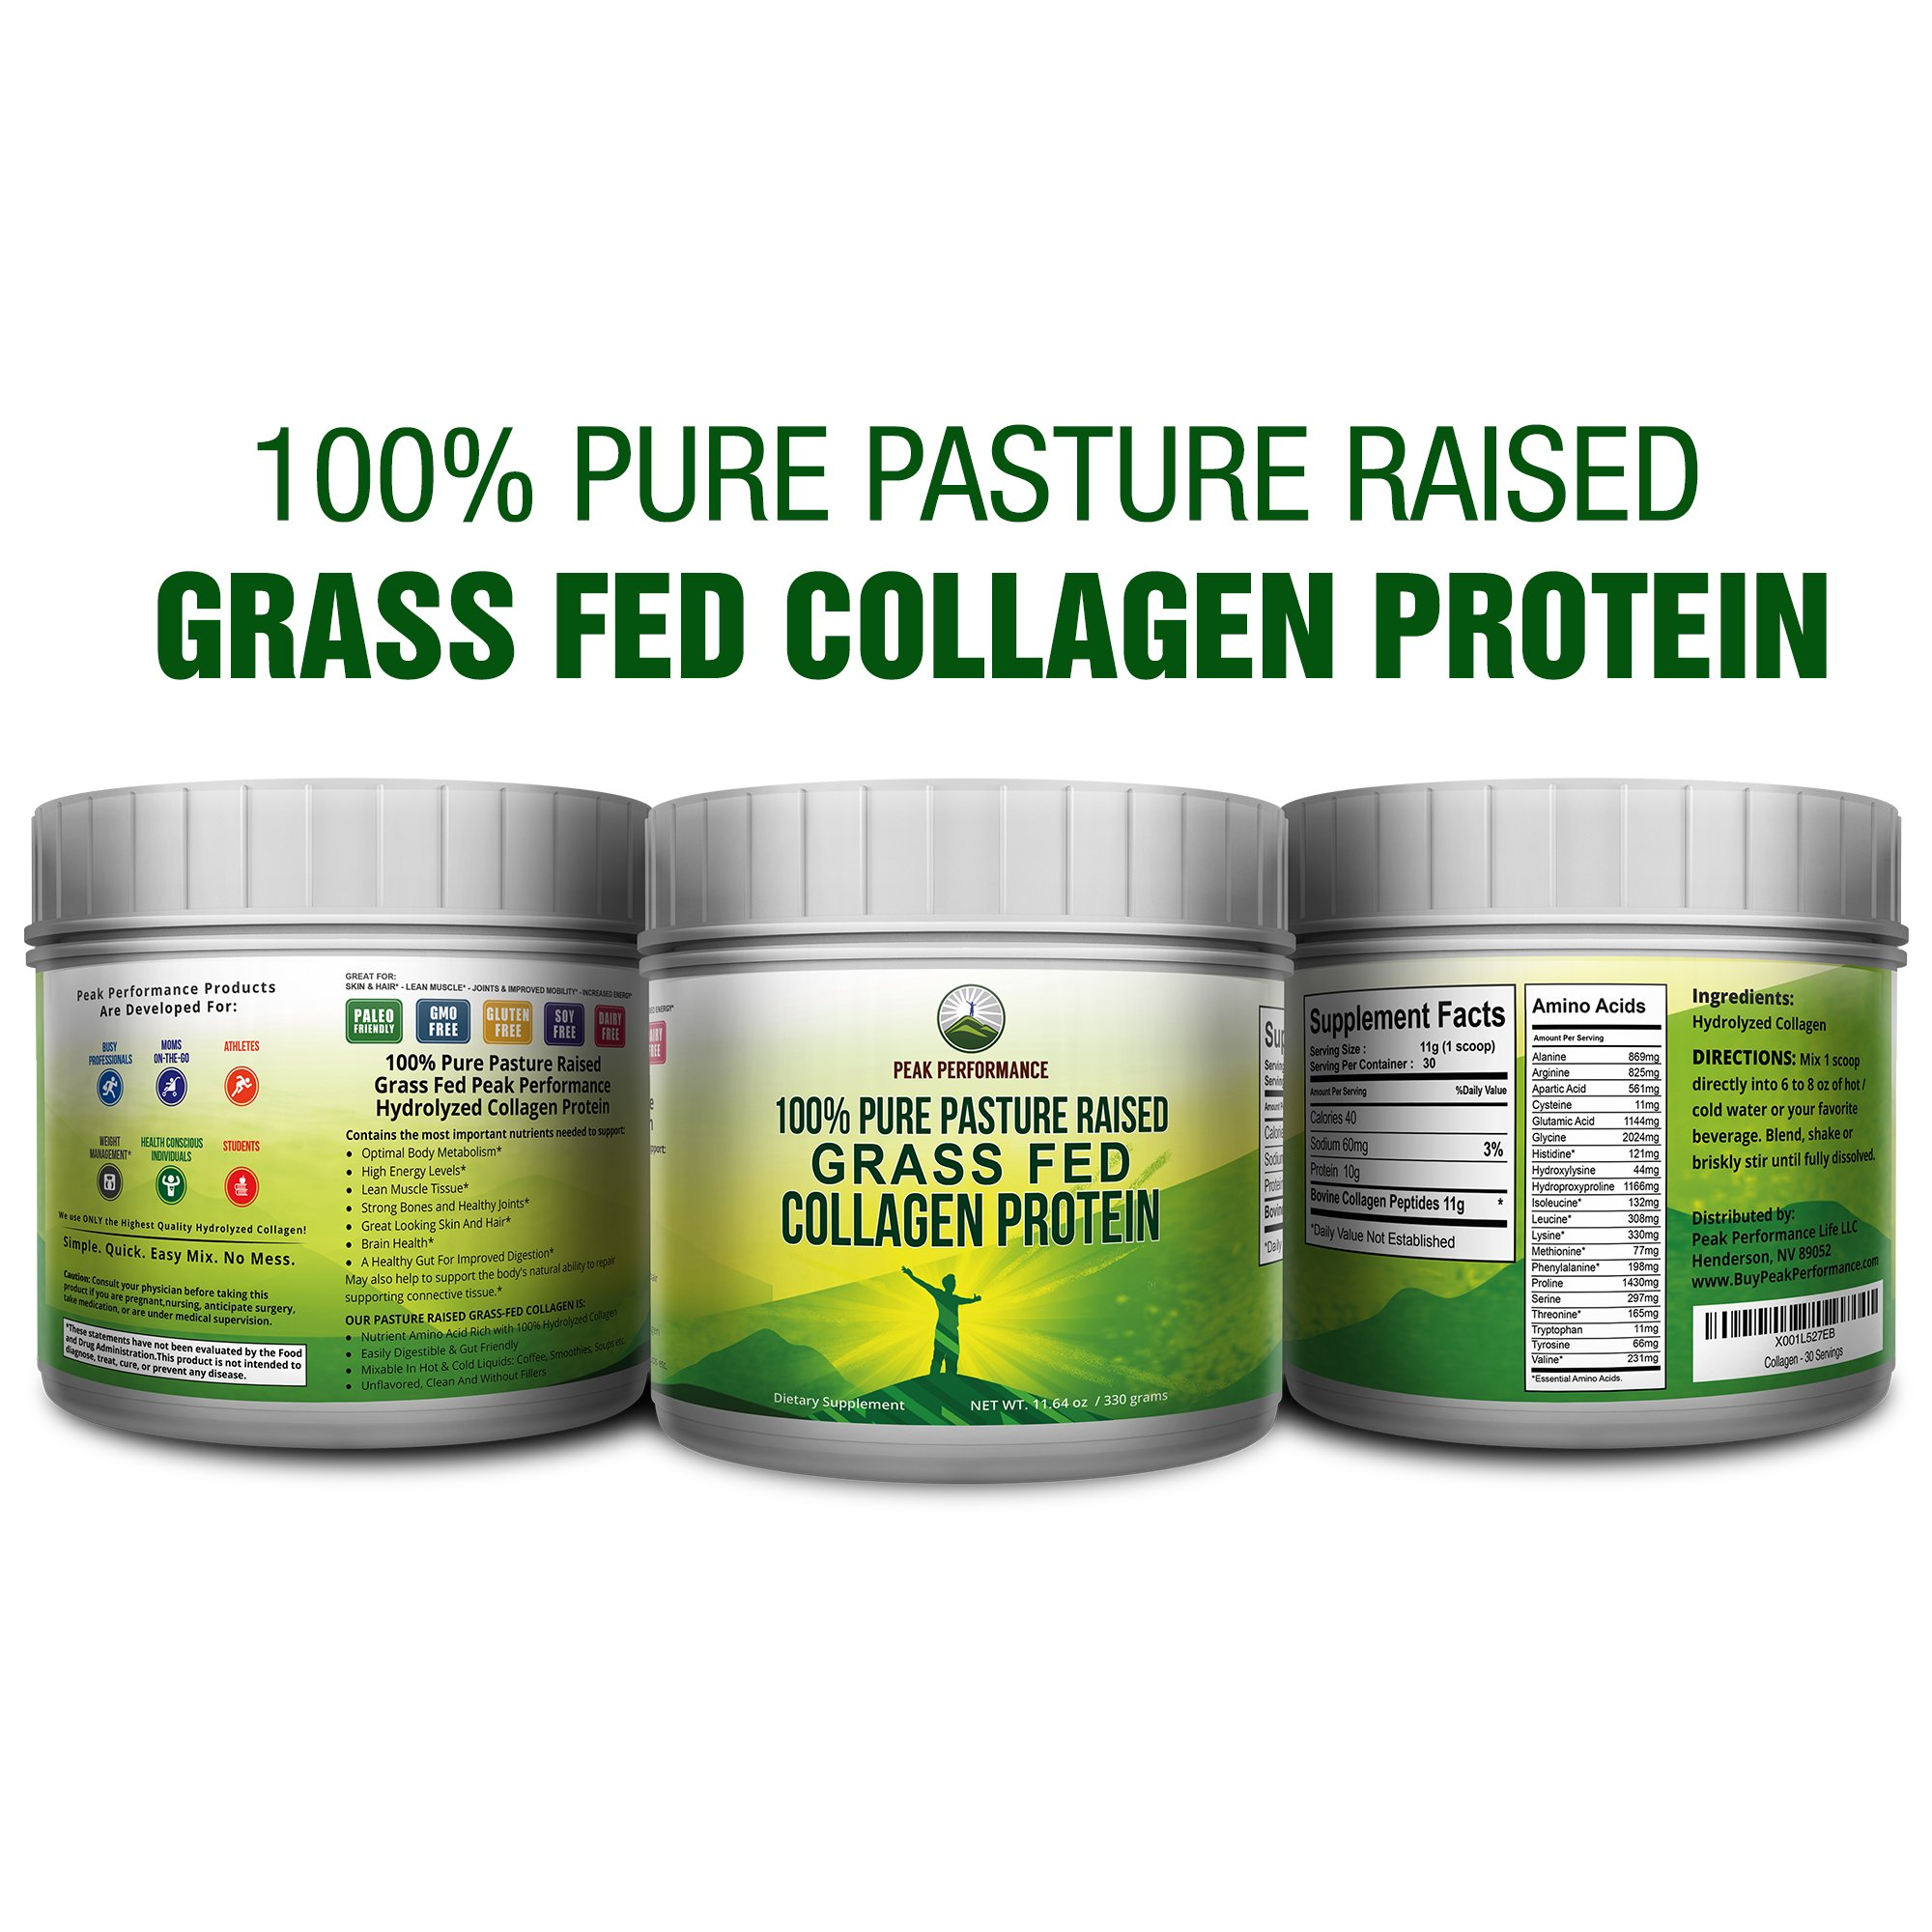 Pure Pasture Raised Grass Fed Hydrolyzed Collagen Protein by Peak Performance. Paleo Friendly, Gluten & Dairy Free Collagen Peptides (Unflavored Collagen) by Peak Performance Coffee (Image #2)